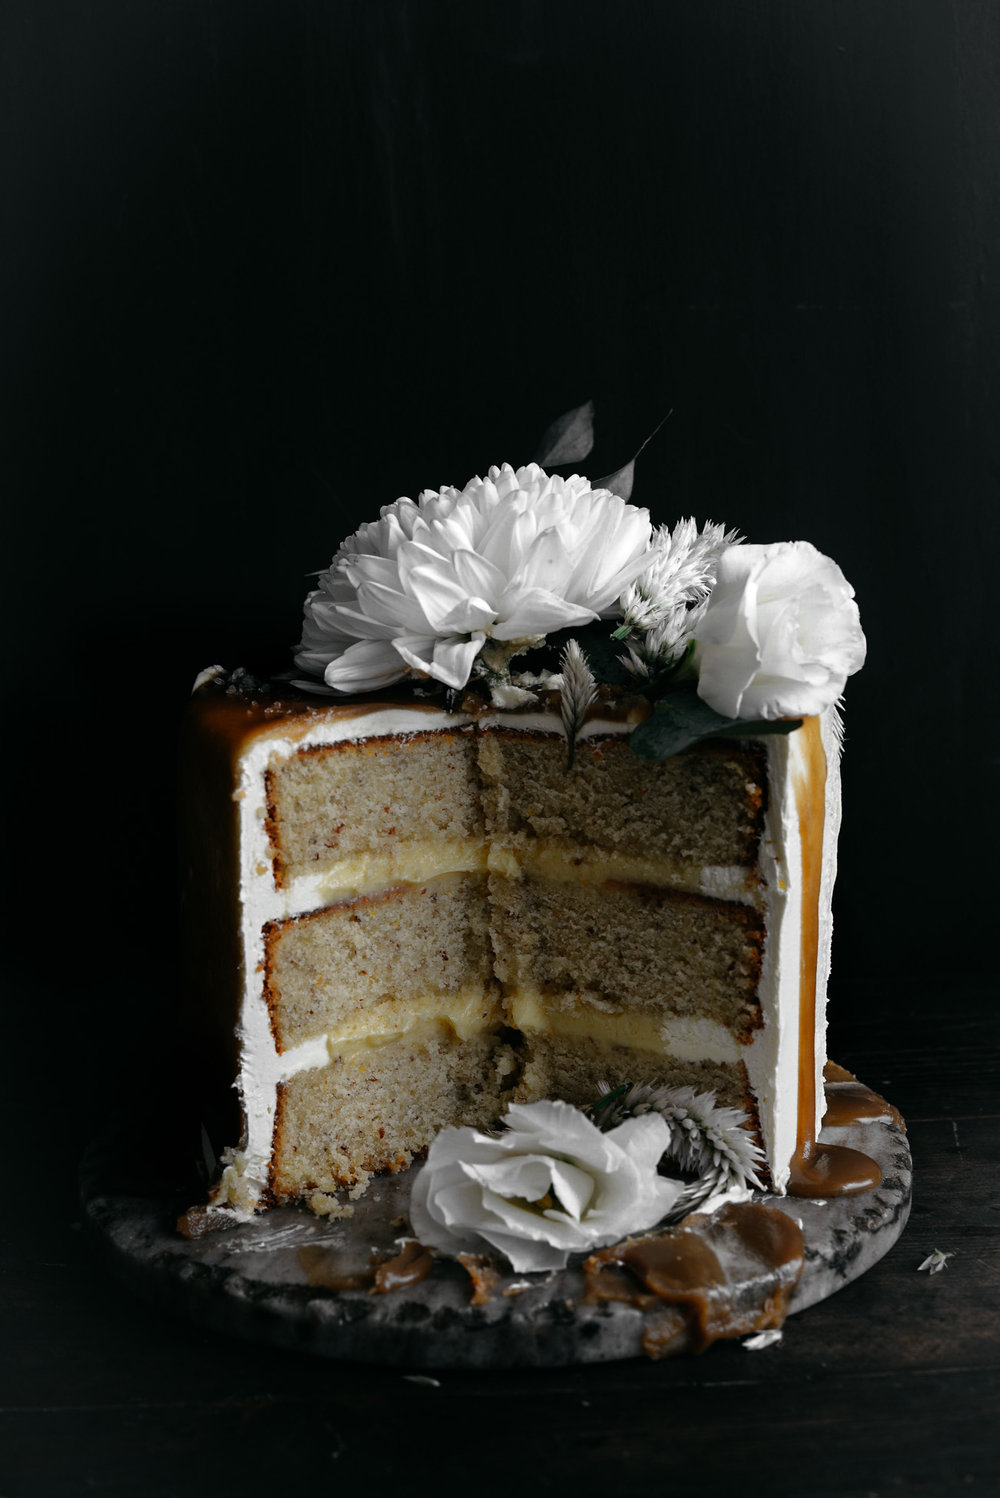 Italian-Orange-Blossom-and-Almond-Cake-with-Orange-Curd-Mascarpone-Swiss-Meringue-Buttercream-and-Fleur-d'Oranger-Caramel-6.jpg